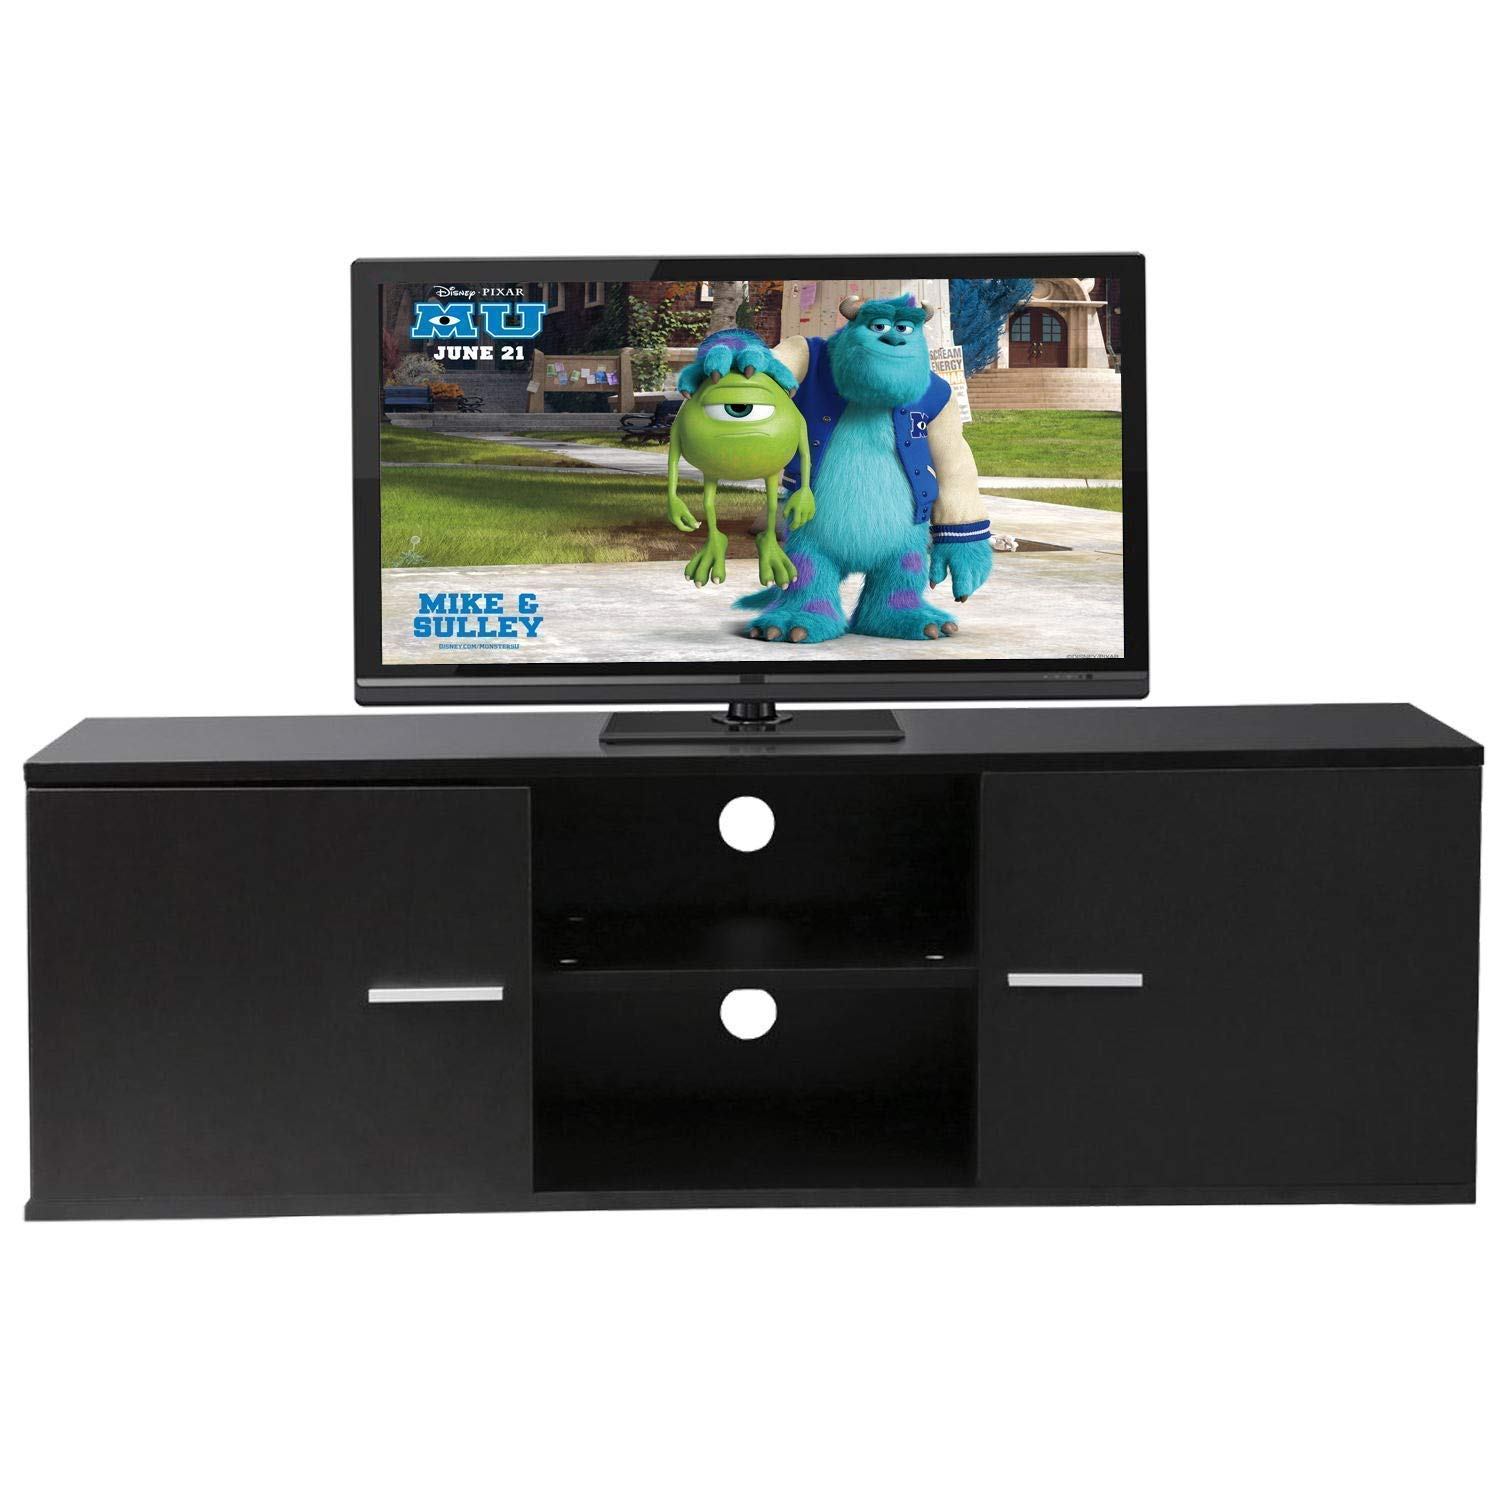 Sofamania Modern TV Stand Wood Storage Console Entertainment Center w/ 2 Doors and Shelves Black Finish